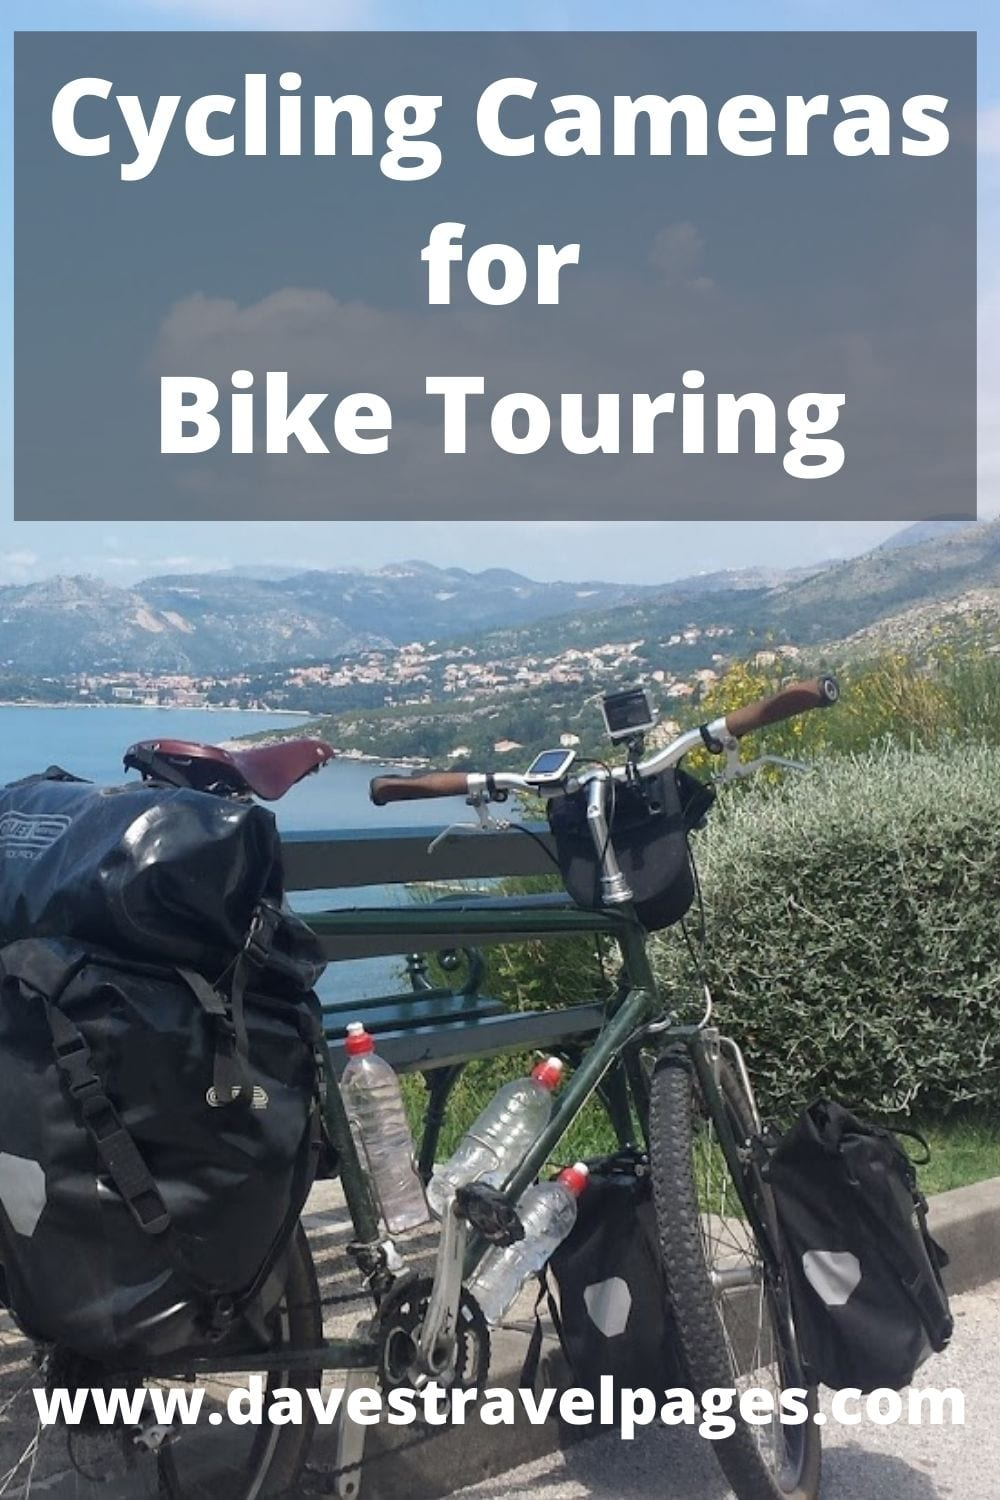 Best cycling cameras for bike touring